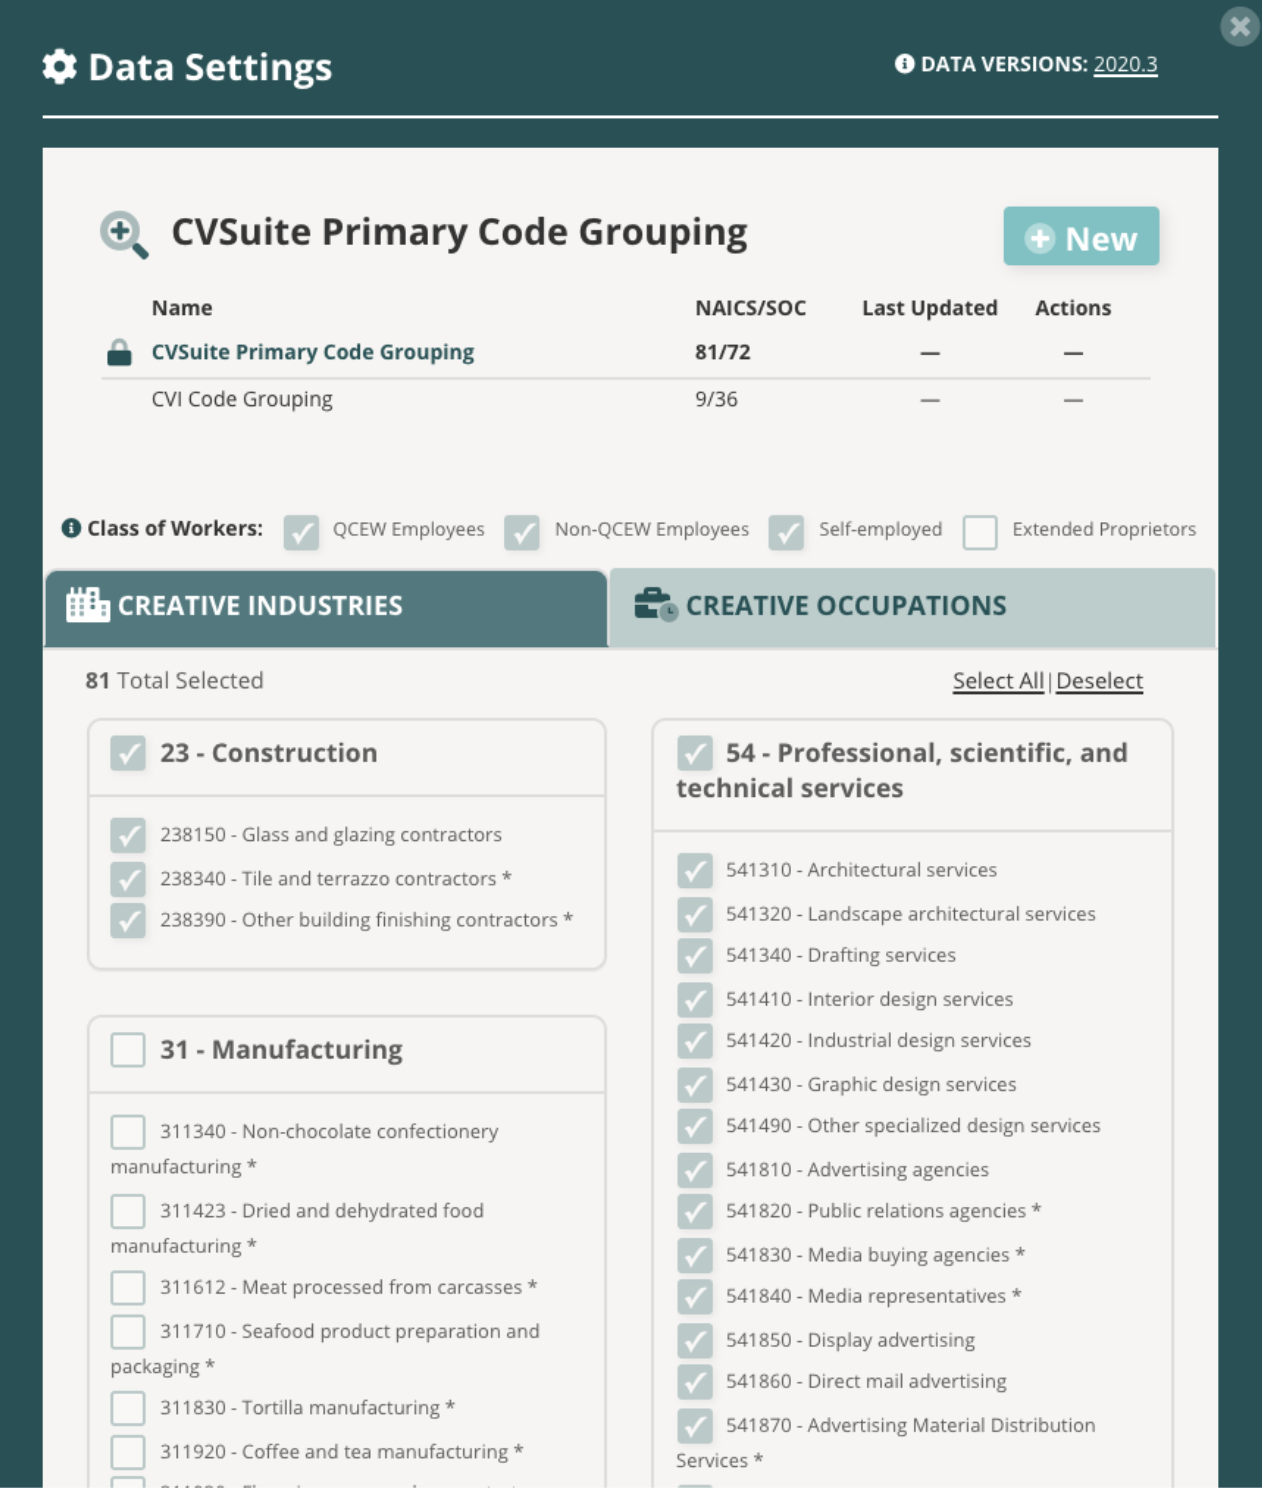 CVSuite Primary Code Grouping Table